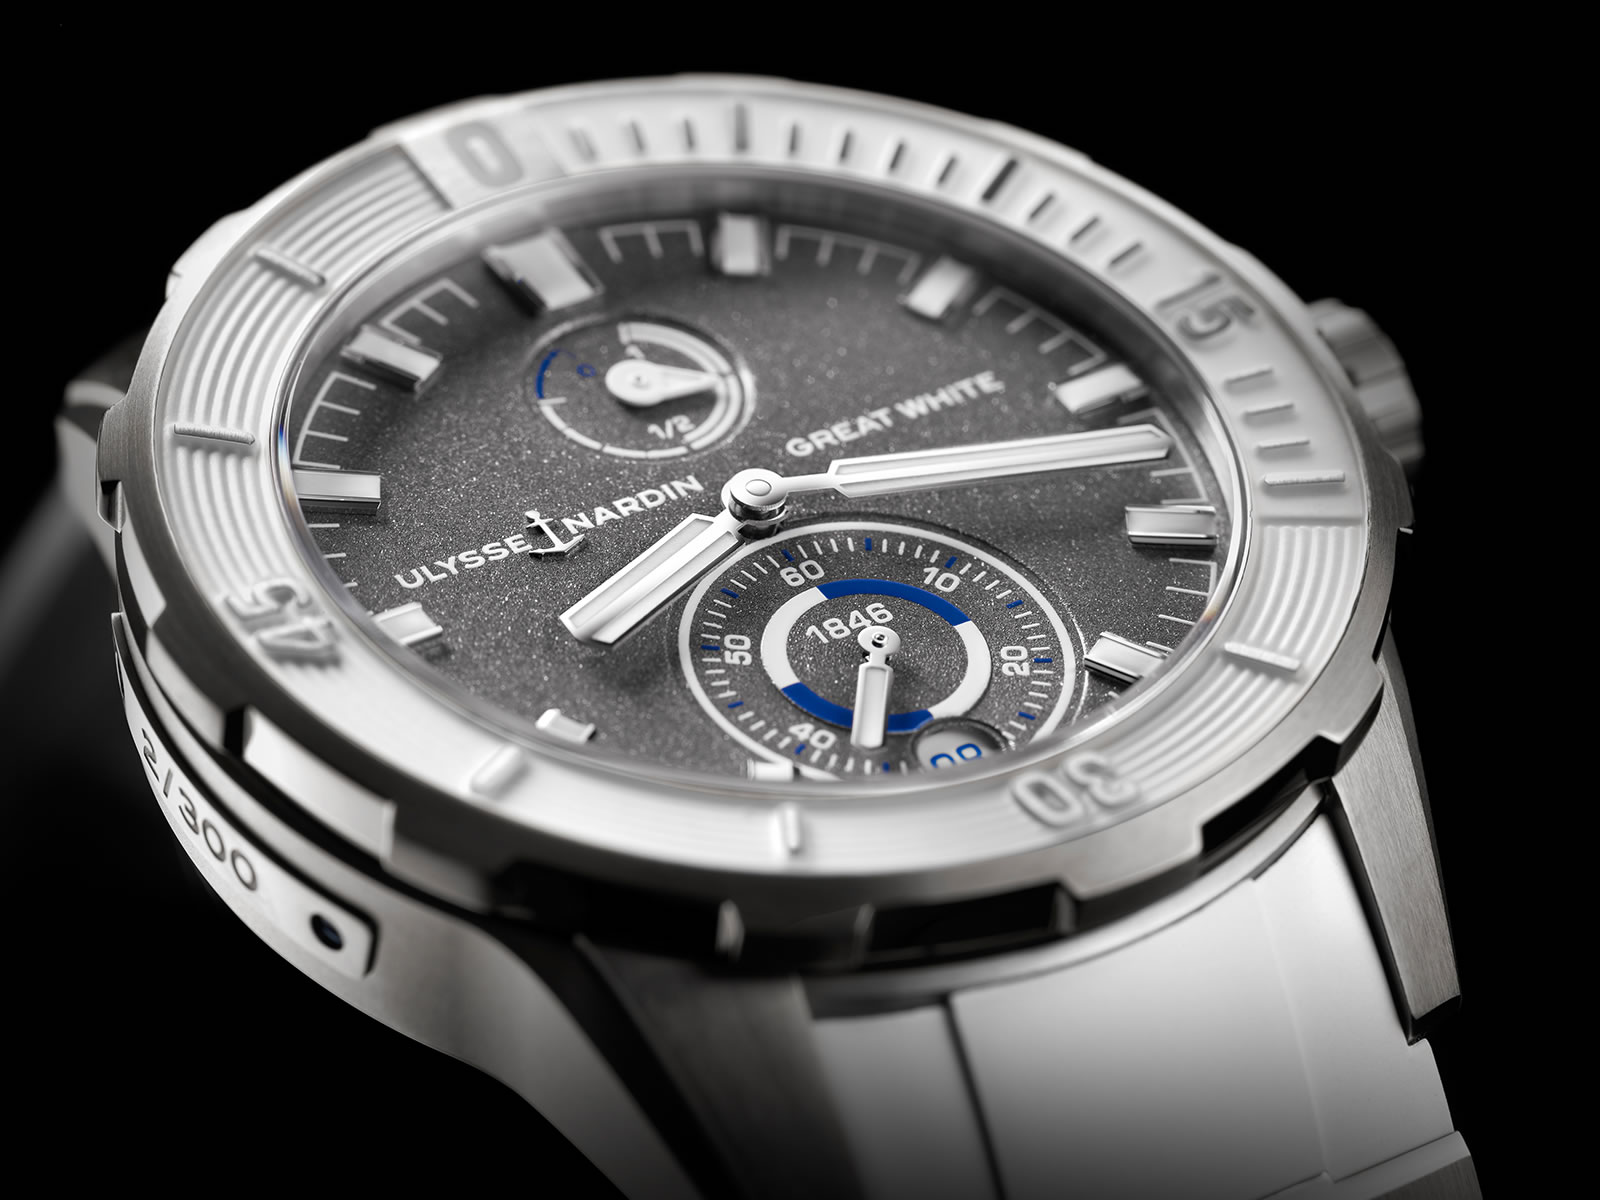 1183-170le-3-90-gw-ulysse-nardin-diver-chronometer-great-white-limited-edition-2.jpg